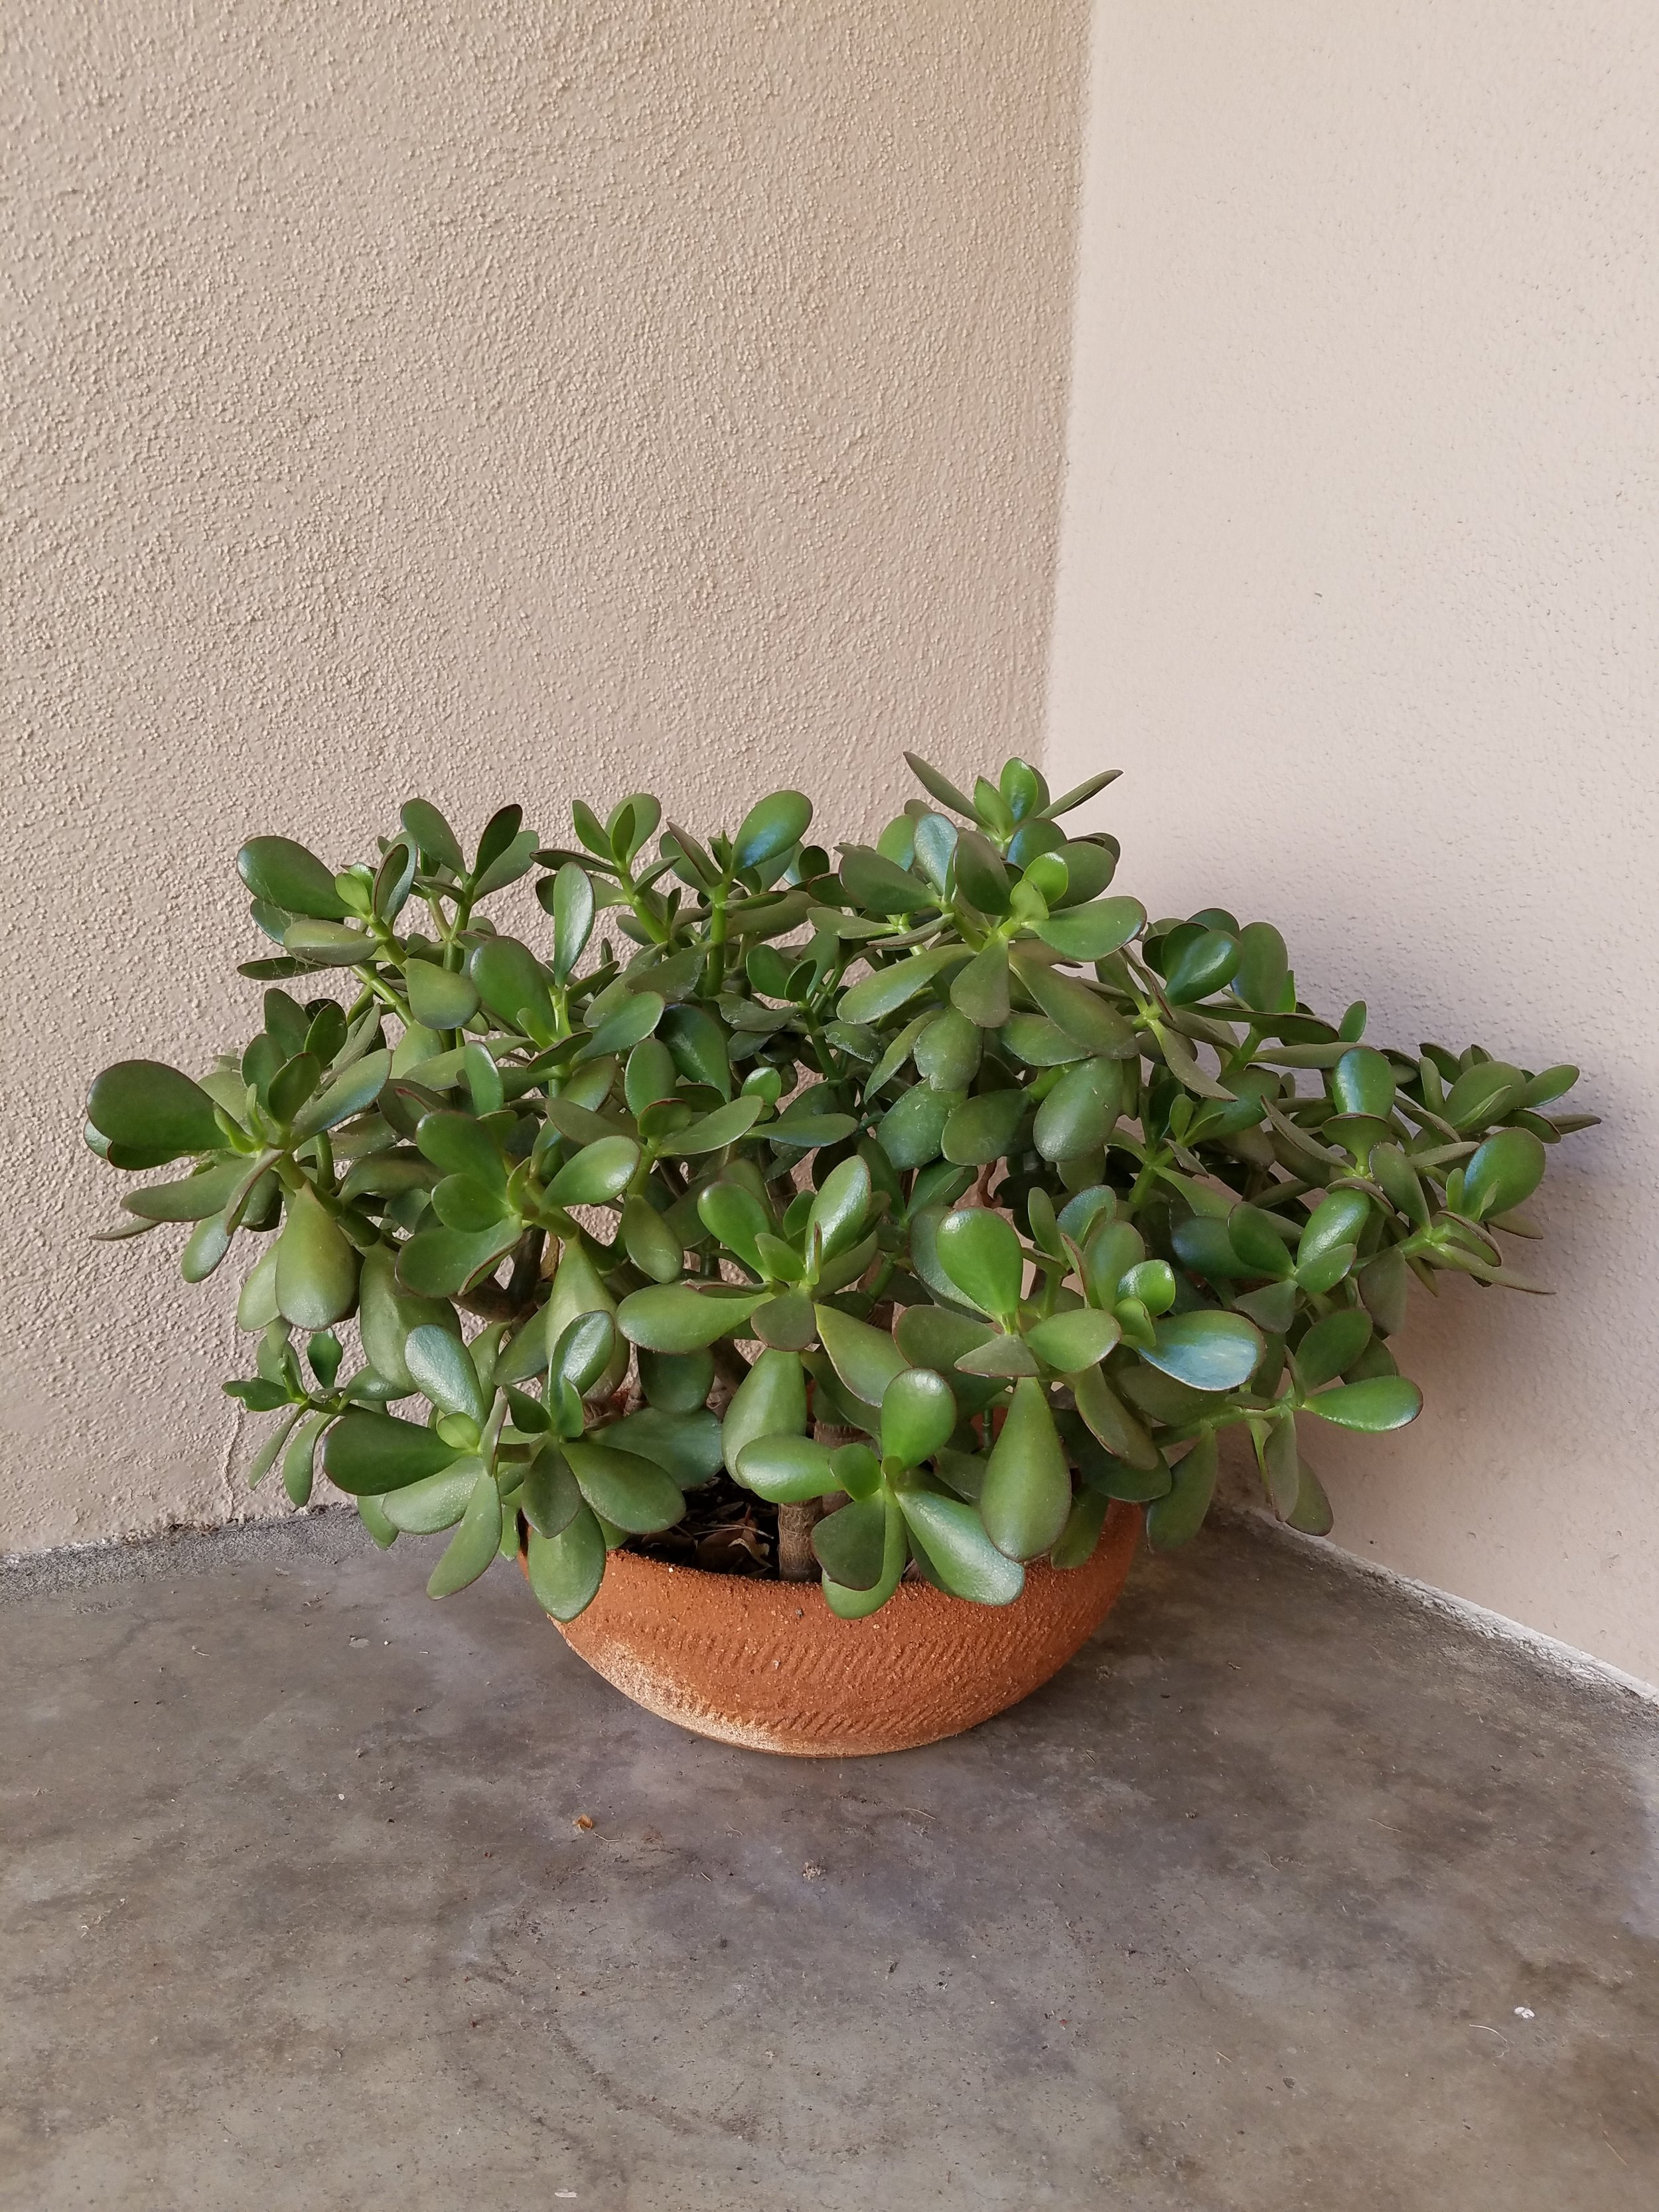 What do you want from a plant?Food, shade, beauty, landscaping, orthe calm of green living things? - A front door welcome. These are my Jade plant cuttings now filling a terracotta pot.